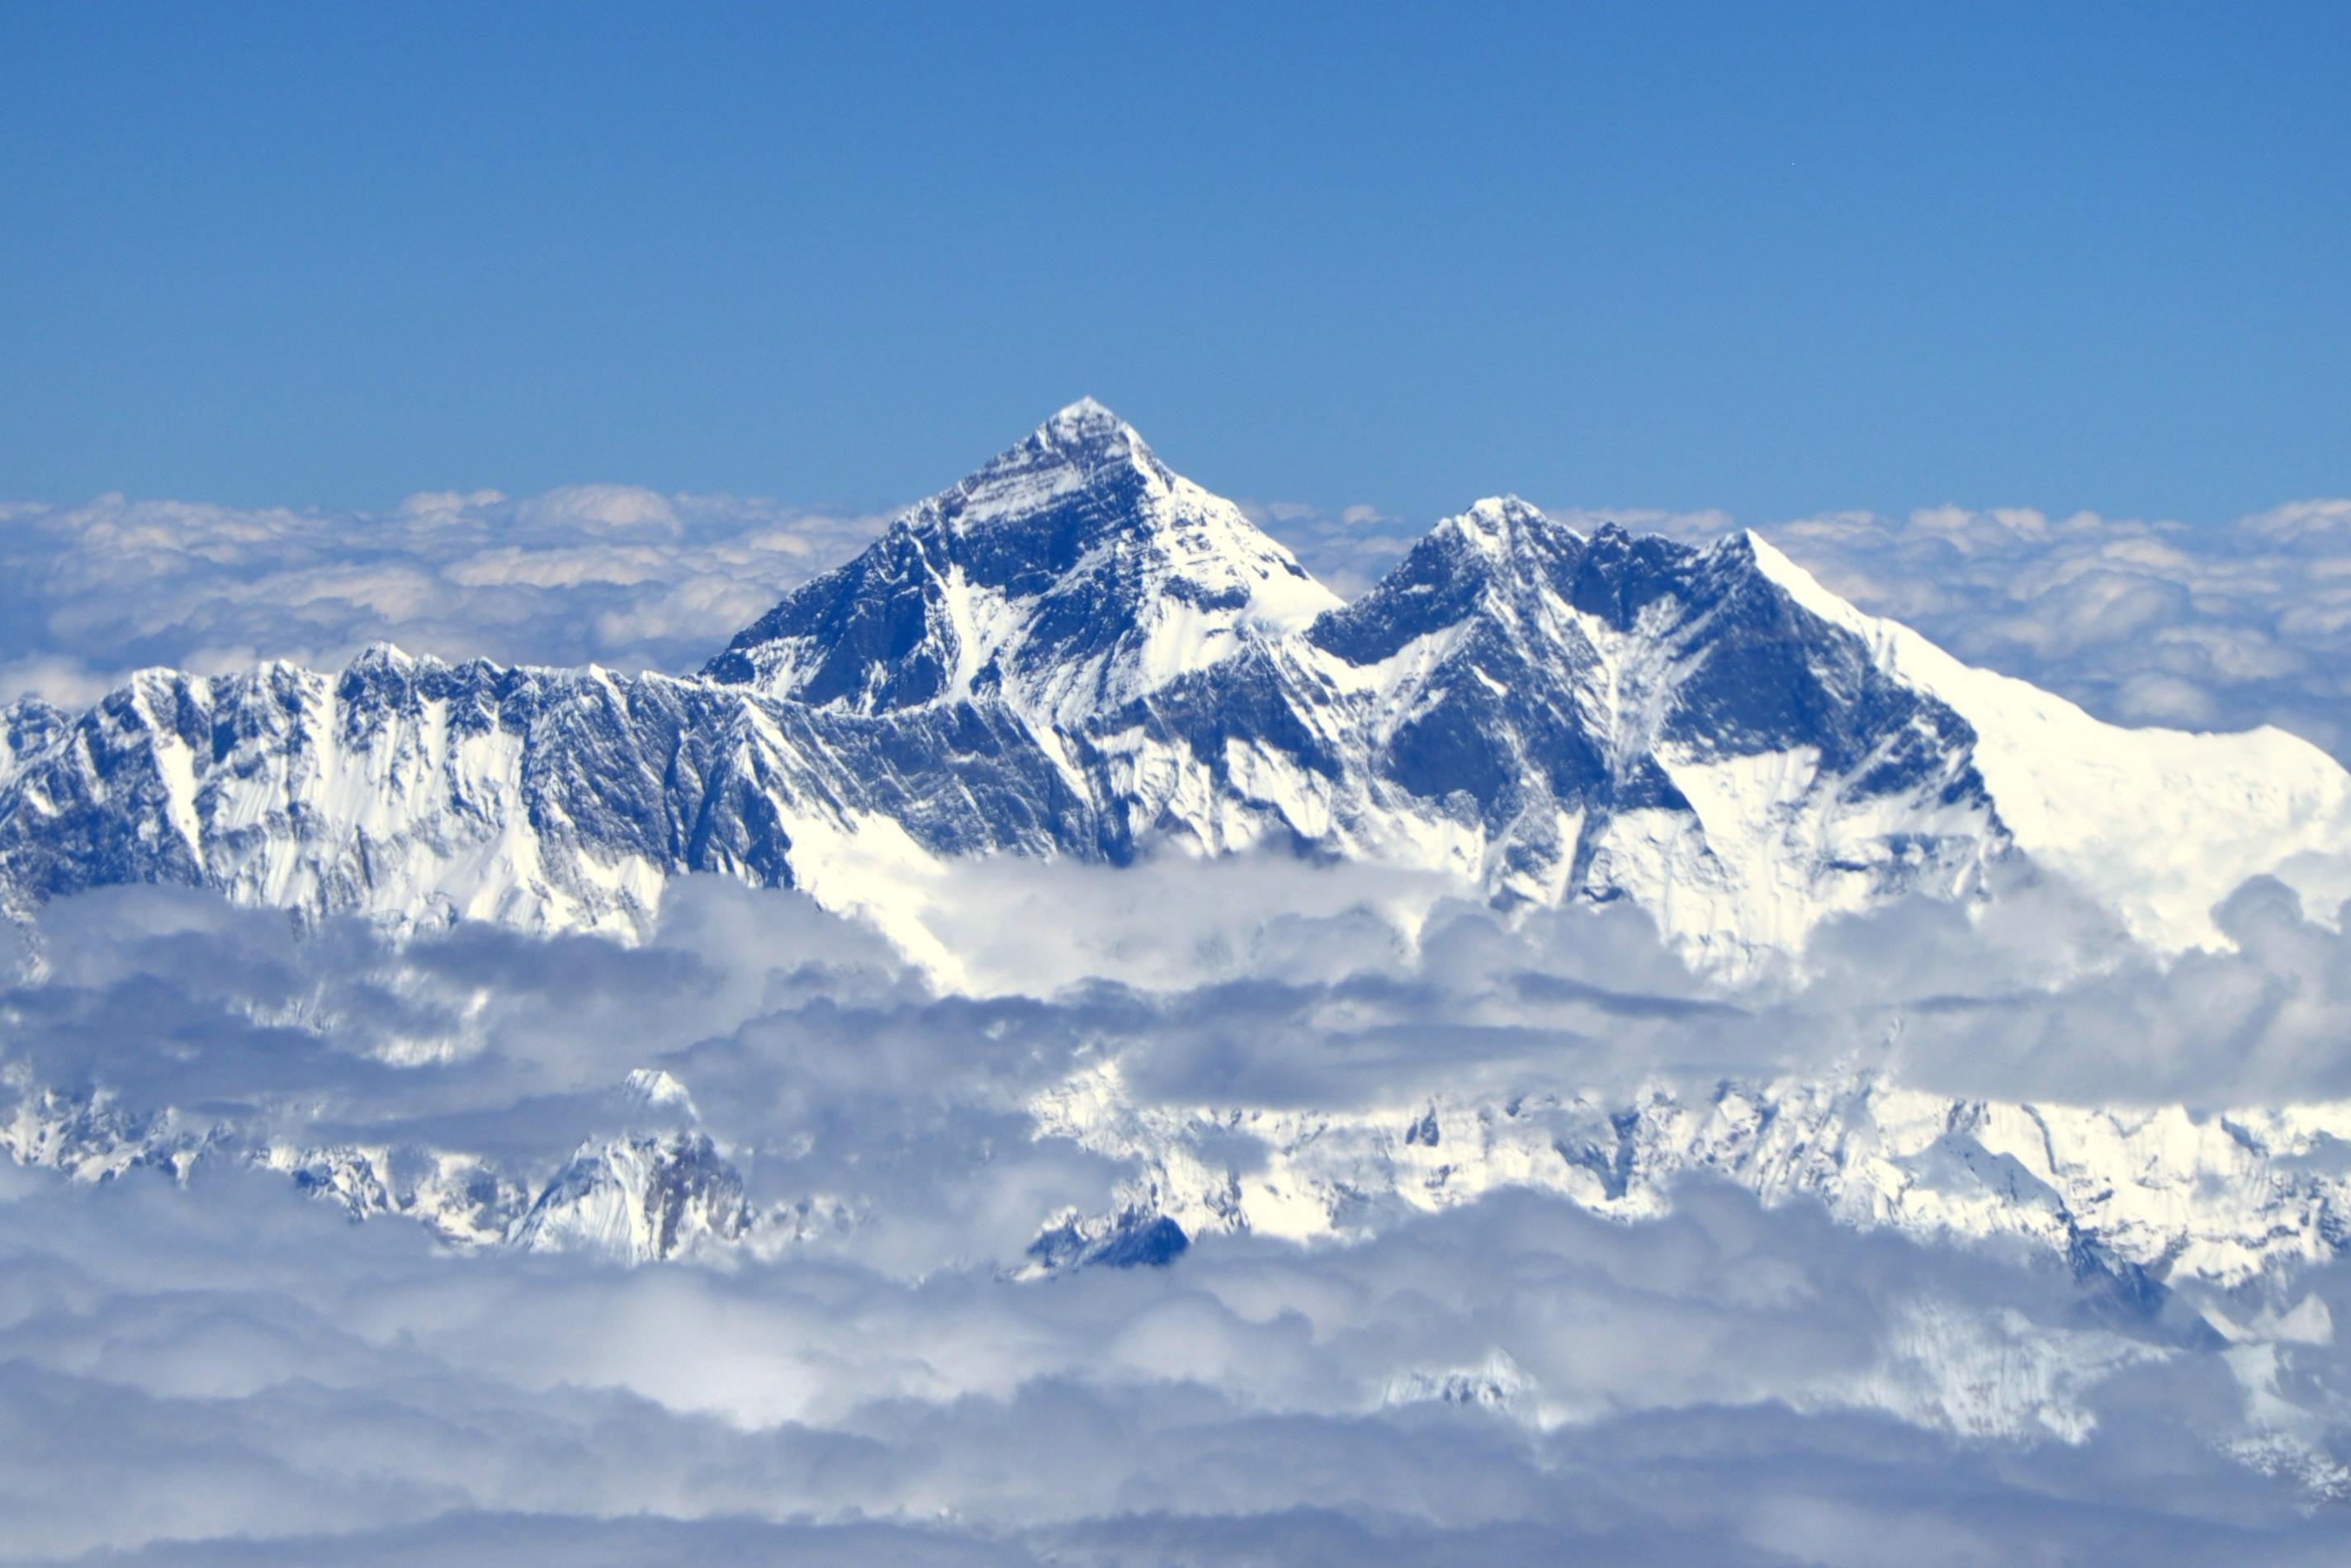 mount everest pictures - HD2848×1900